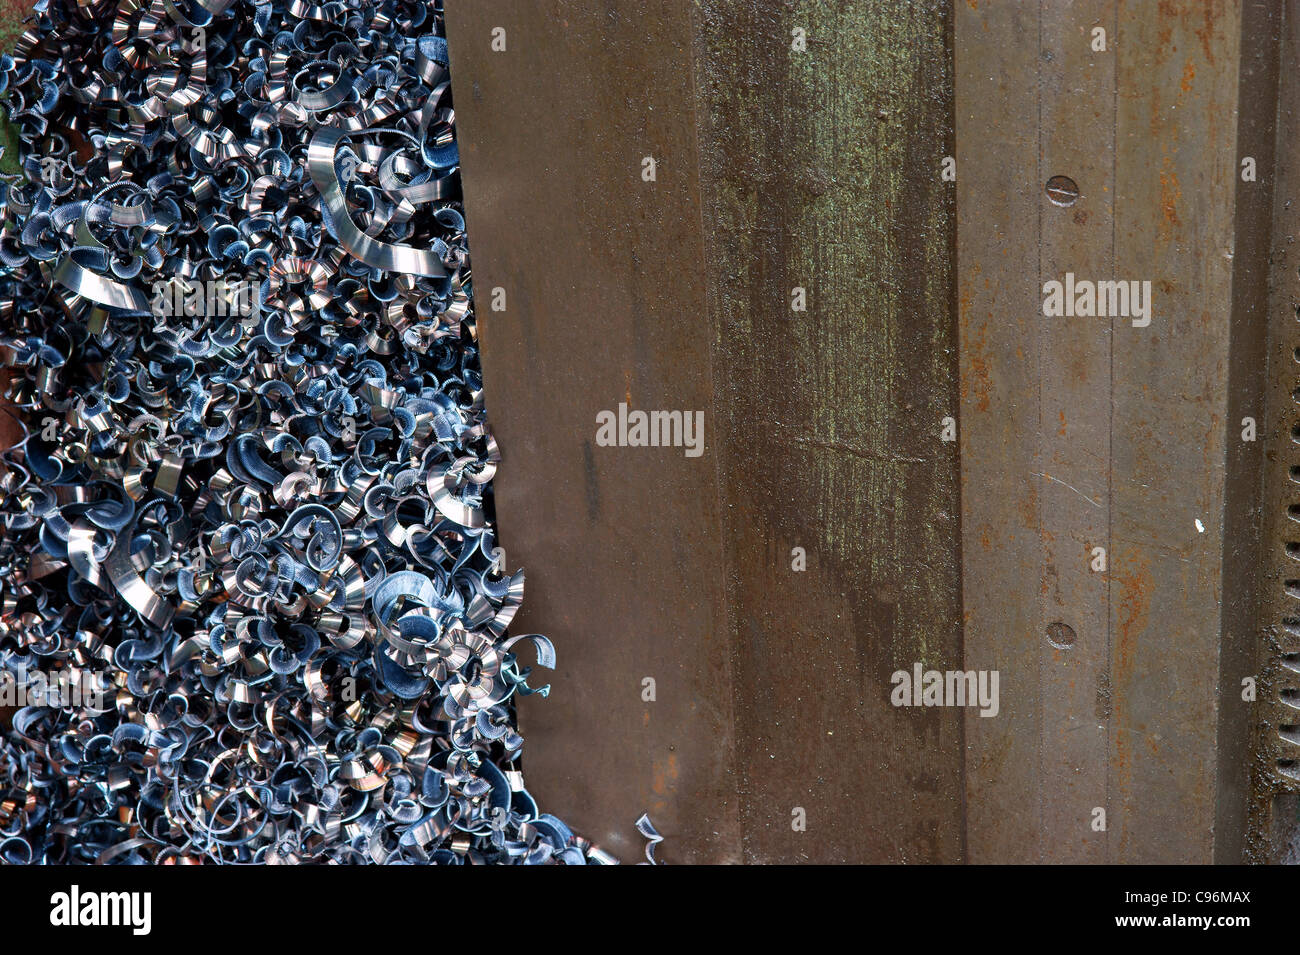 A pile of shavings from a scrapyard, turnings. - Stock Image